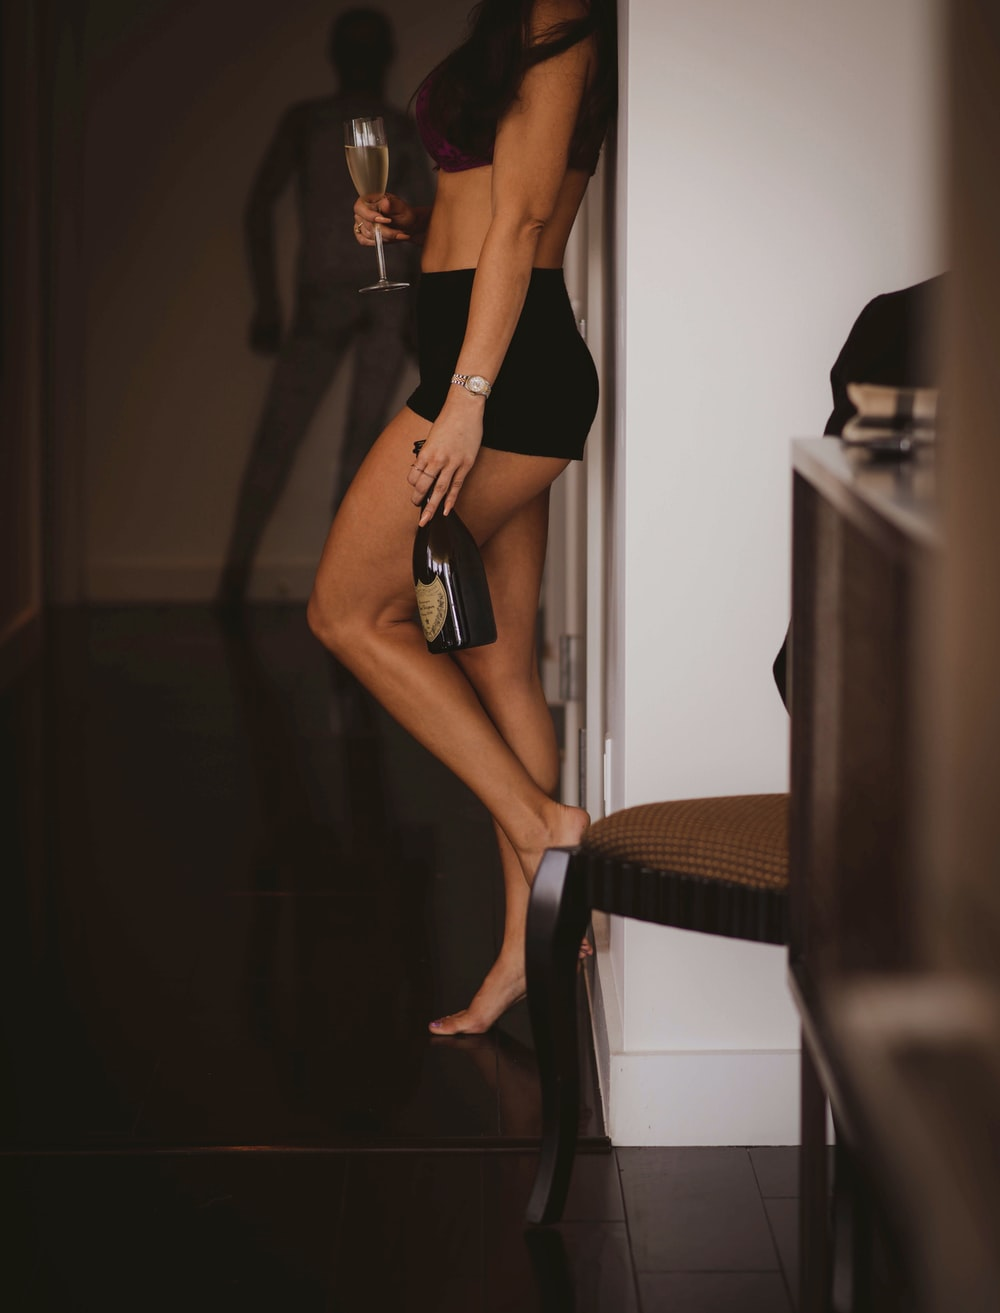 woman in black bikini bottom and black stockings standing on brown wooden staircase